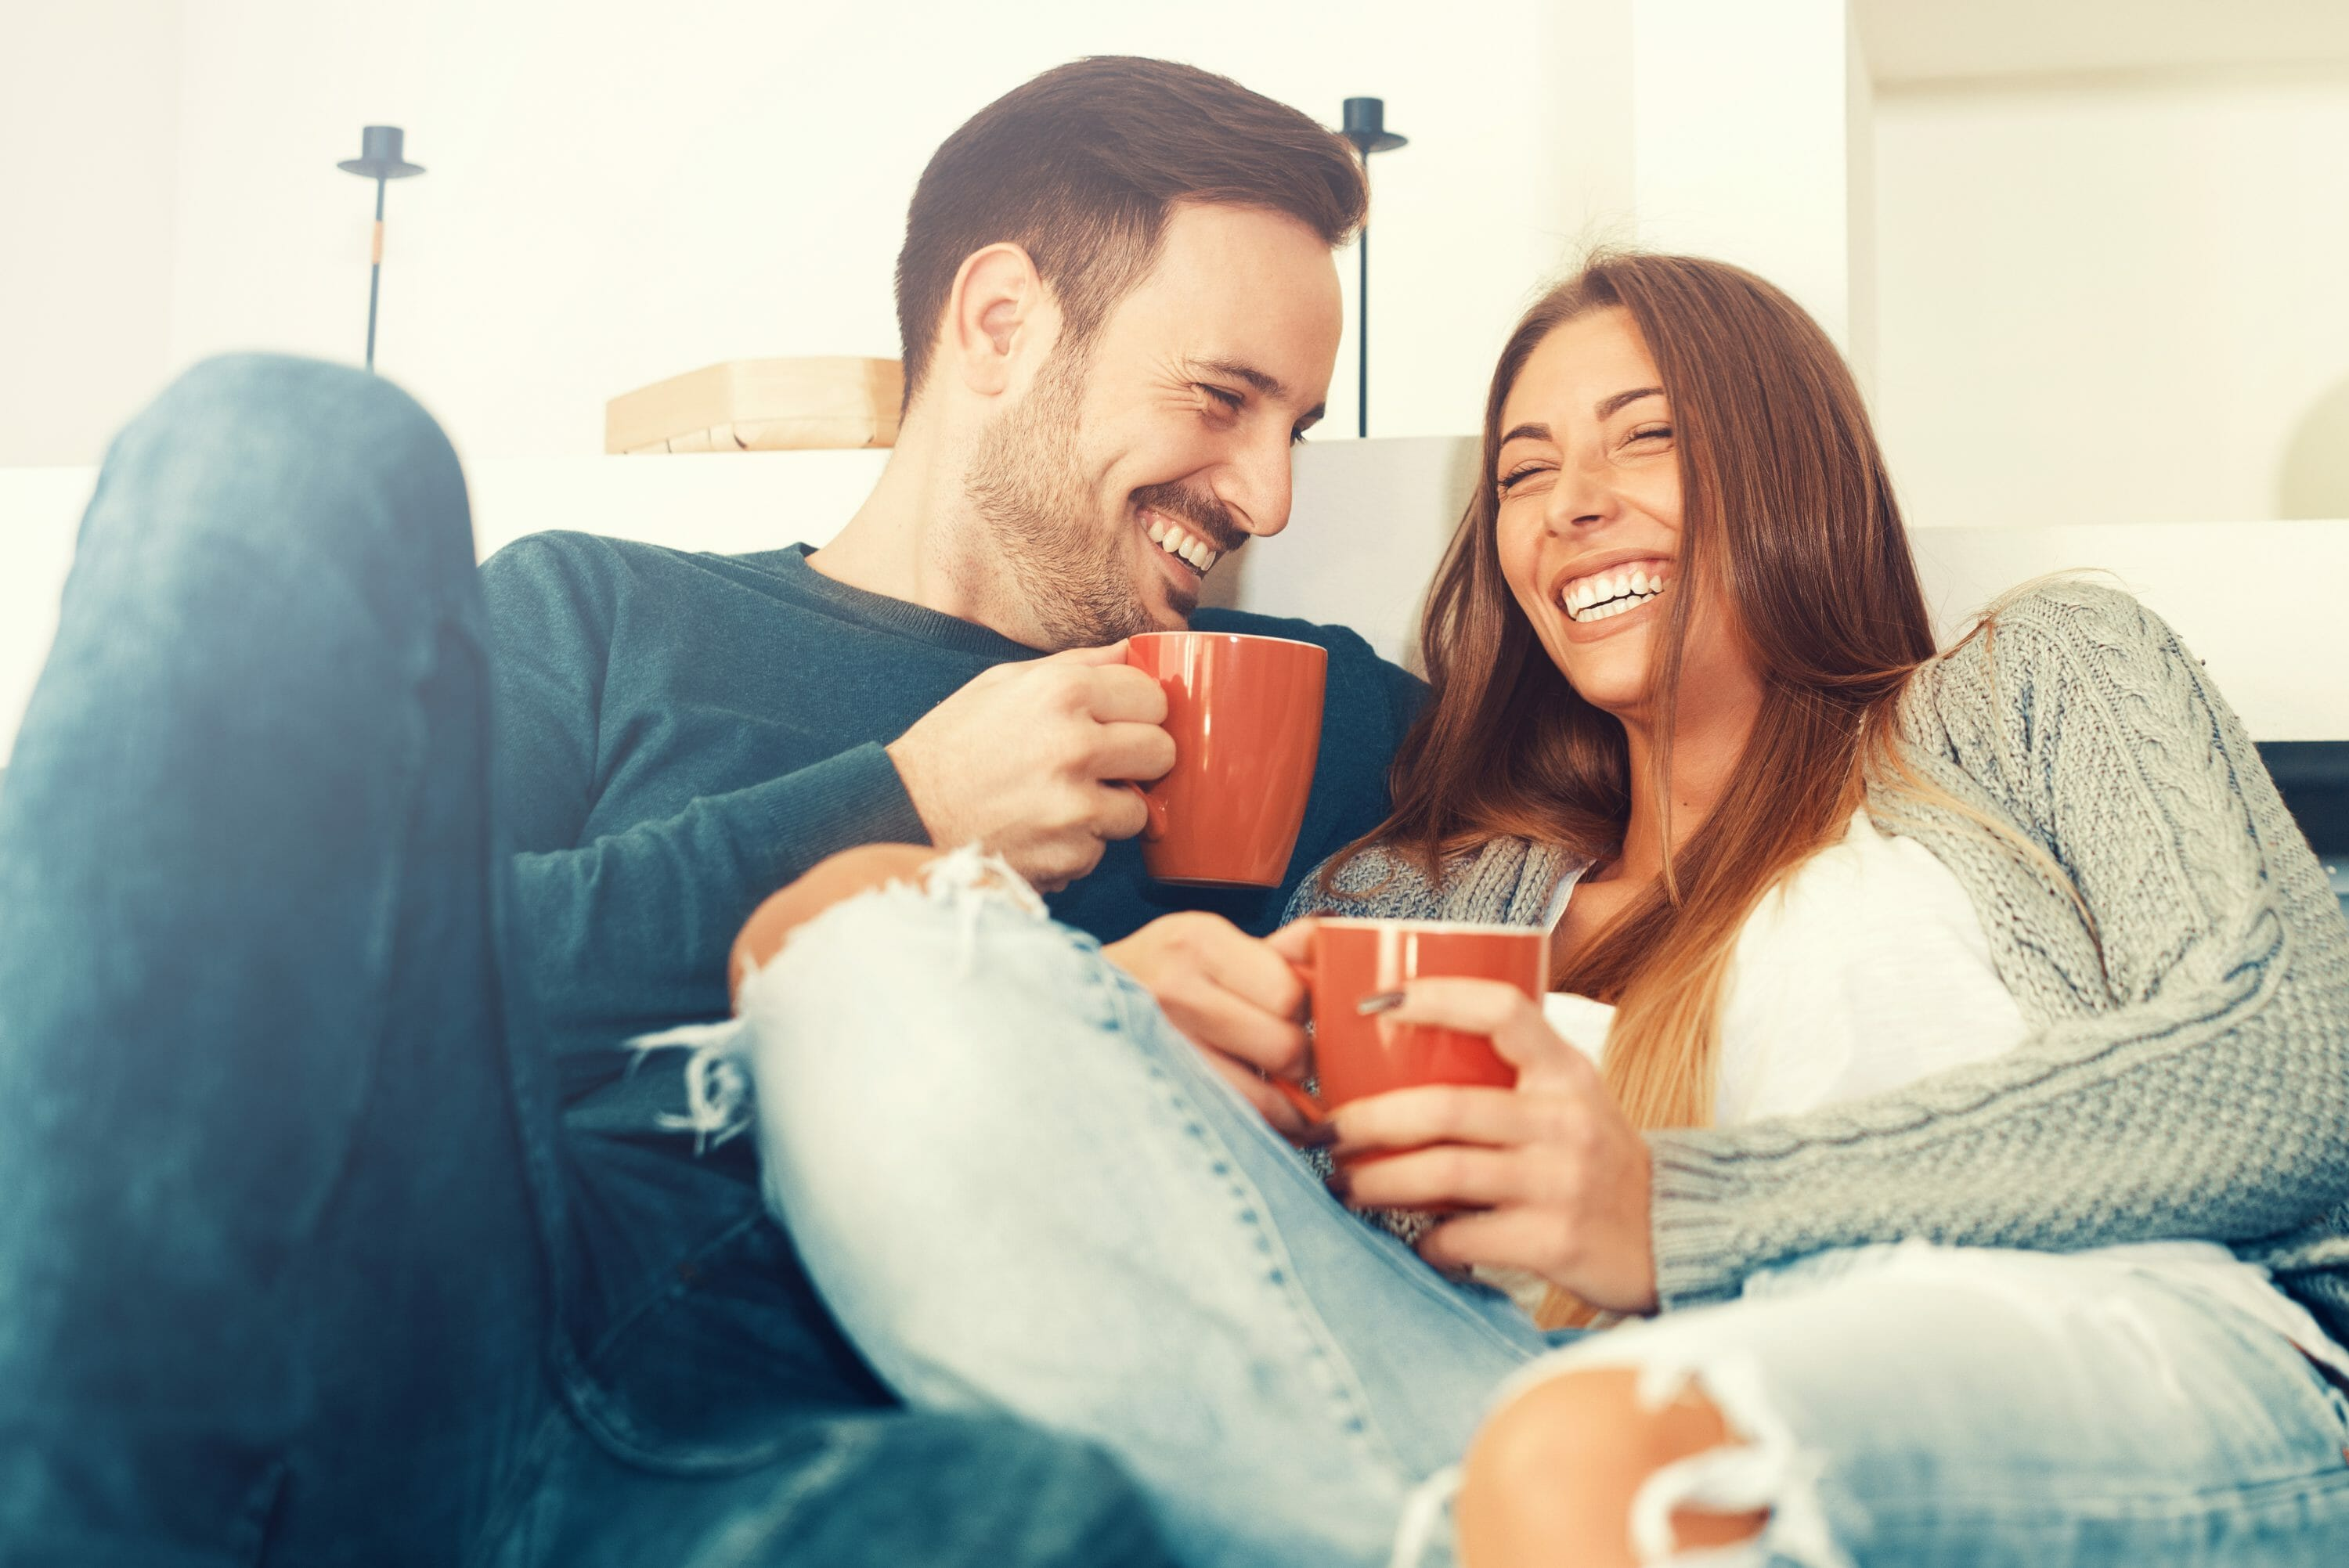 Share financial goals to make your relationship stronger